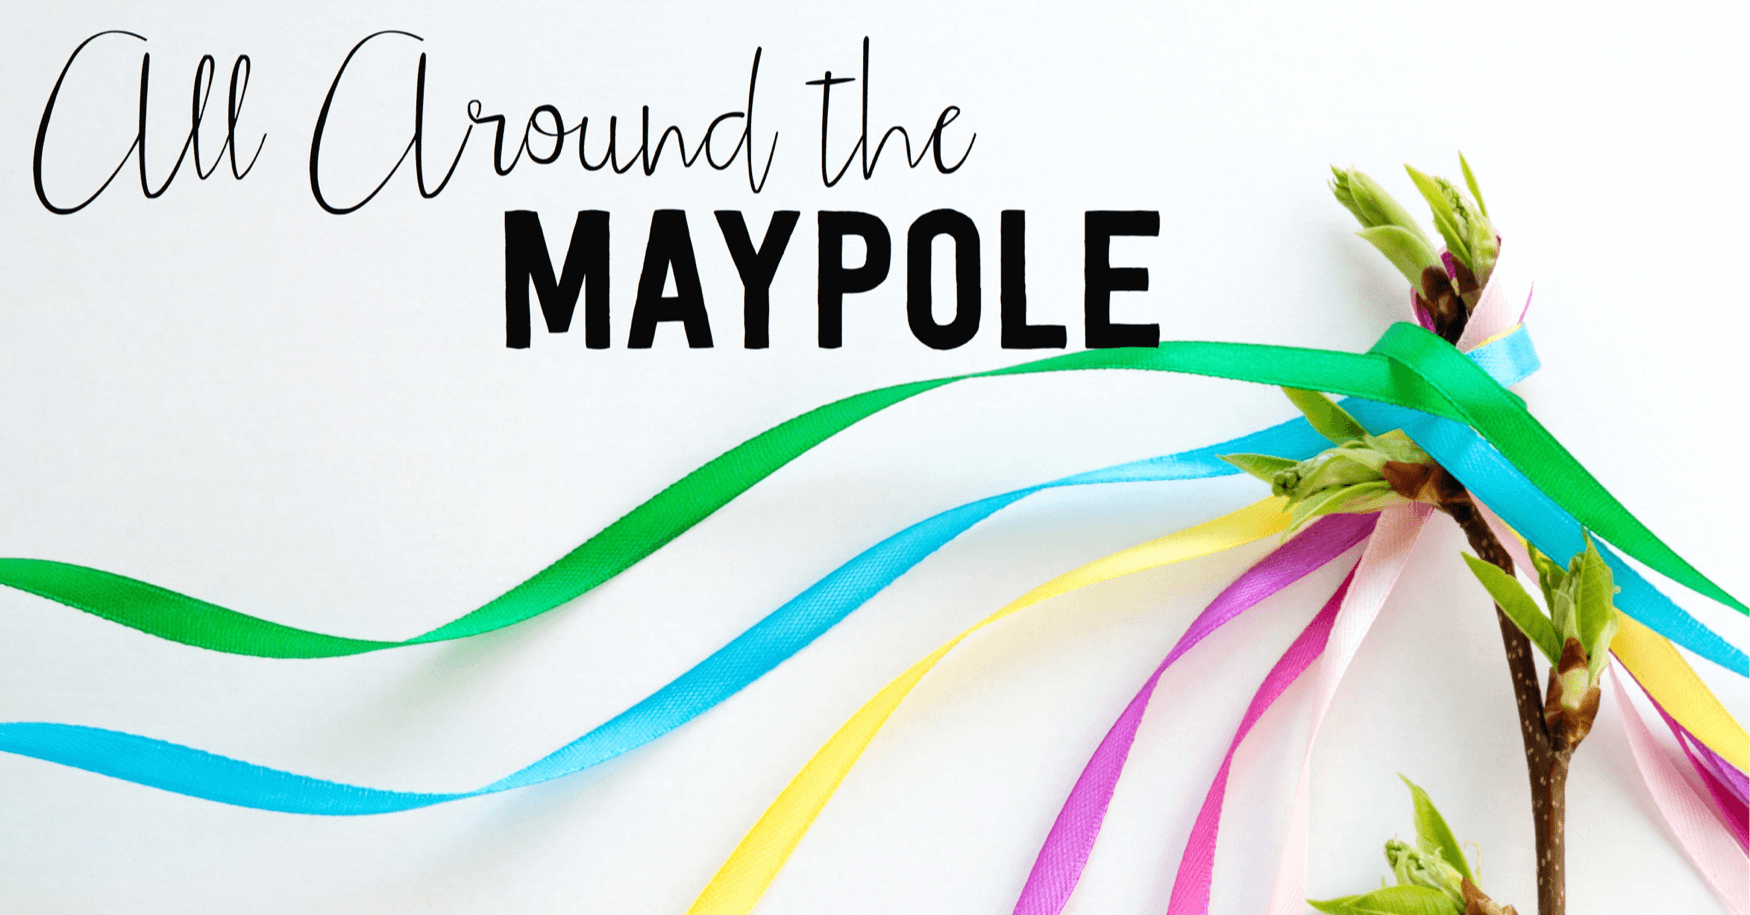 All Around the Maypole